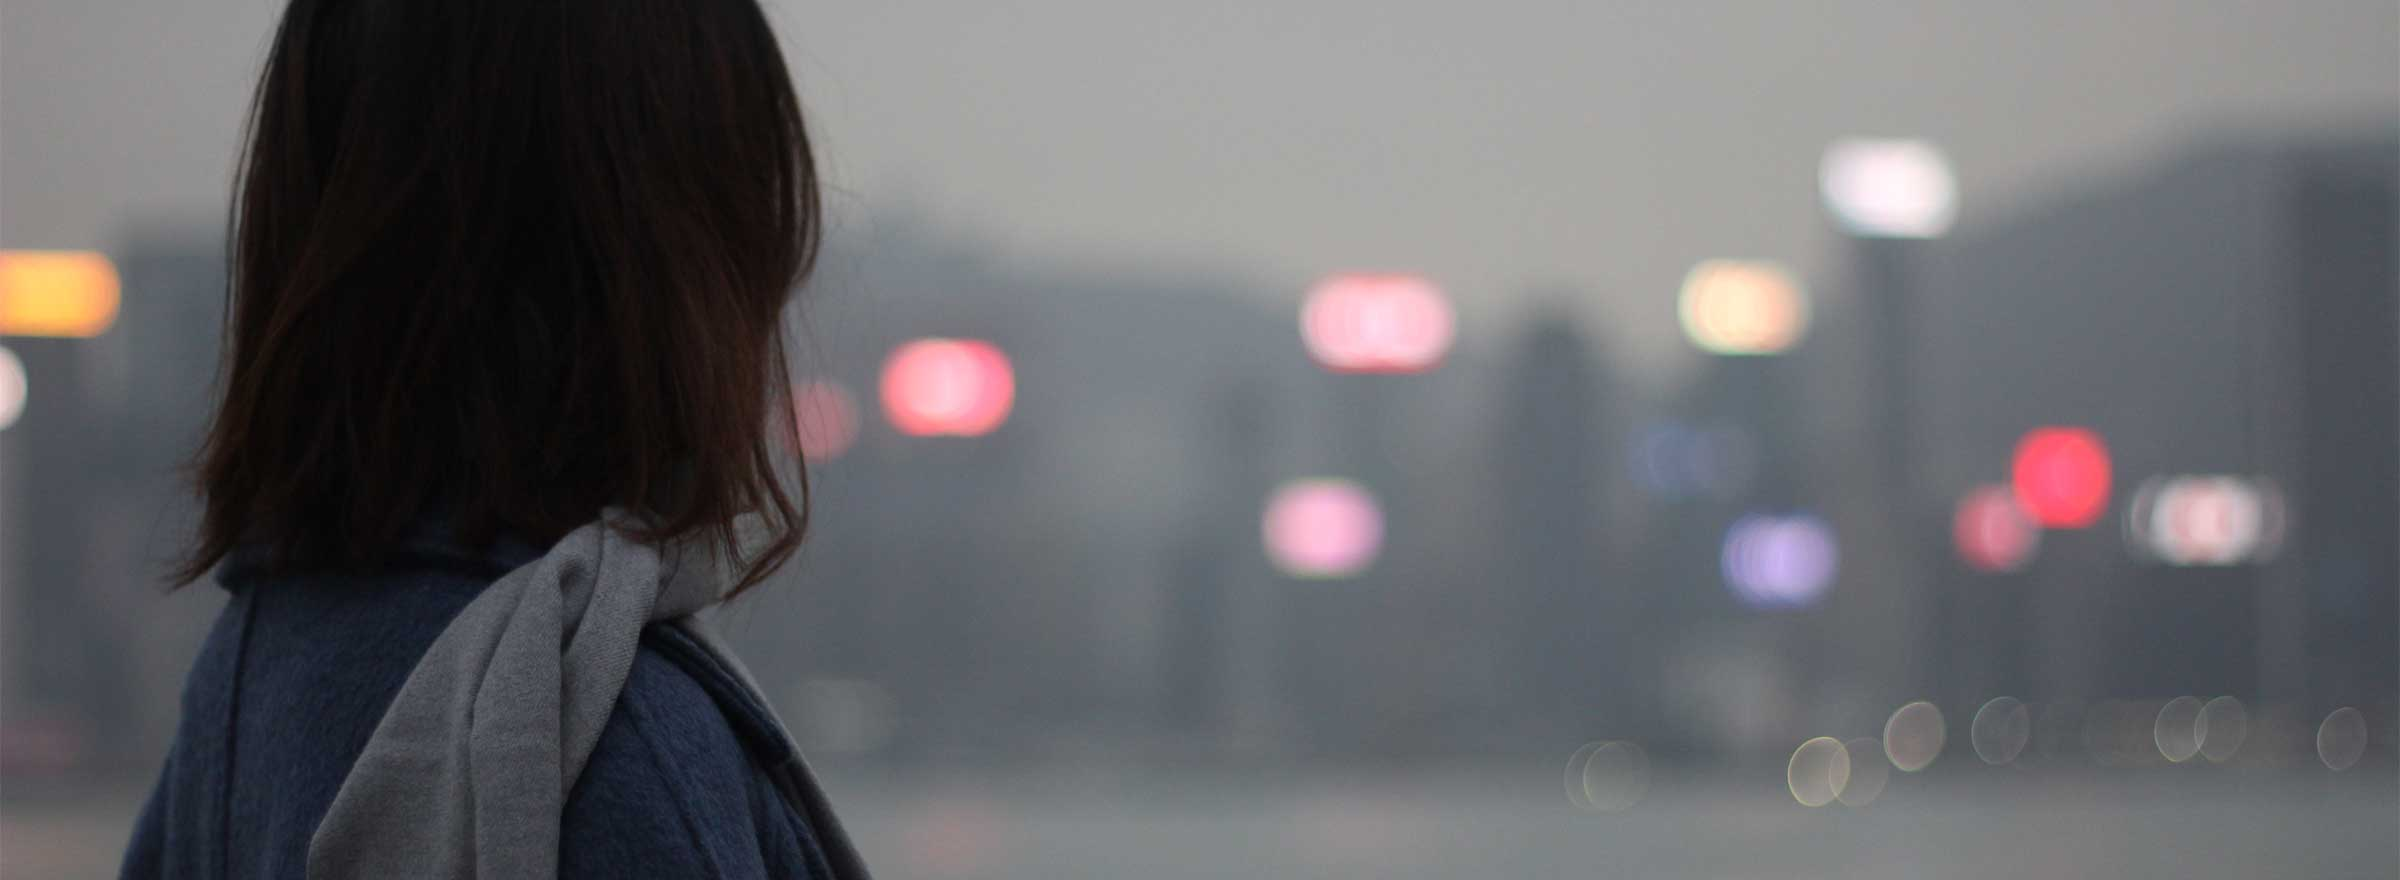 woman looking at distant blurred city lights